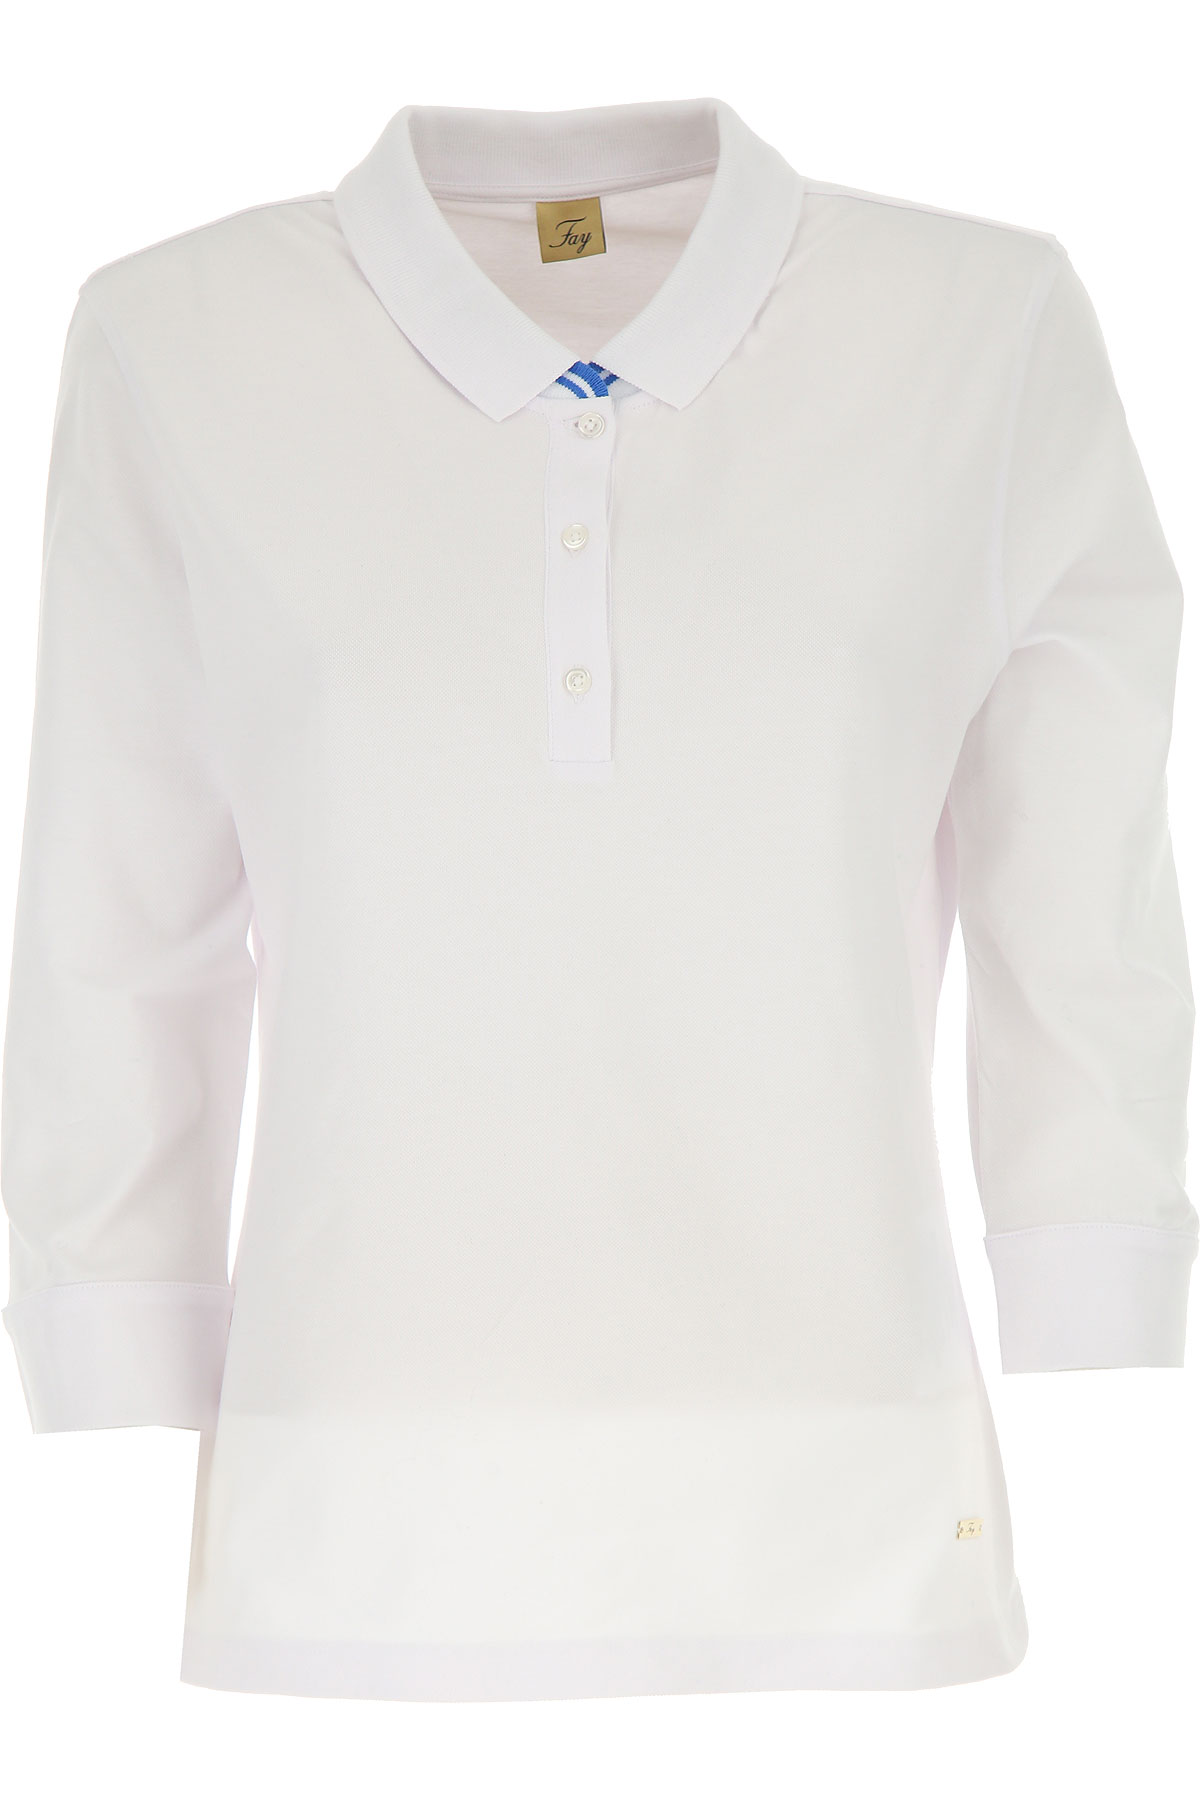 Image of Fay Polo Shirt for Women On Sale, White, Cotton, 2017, 10 6 8